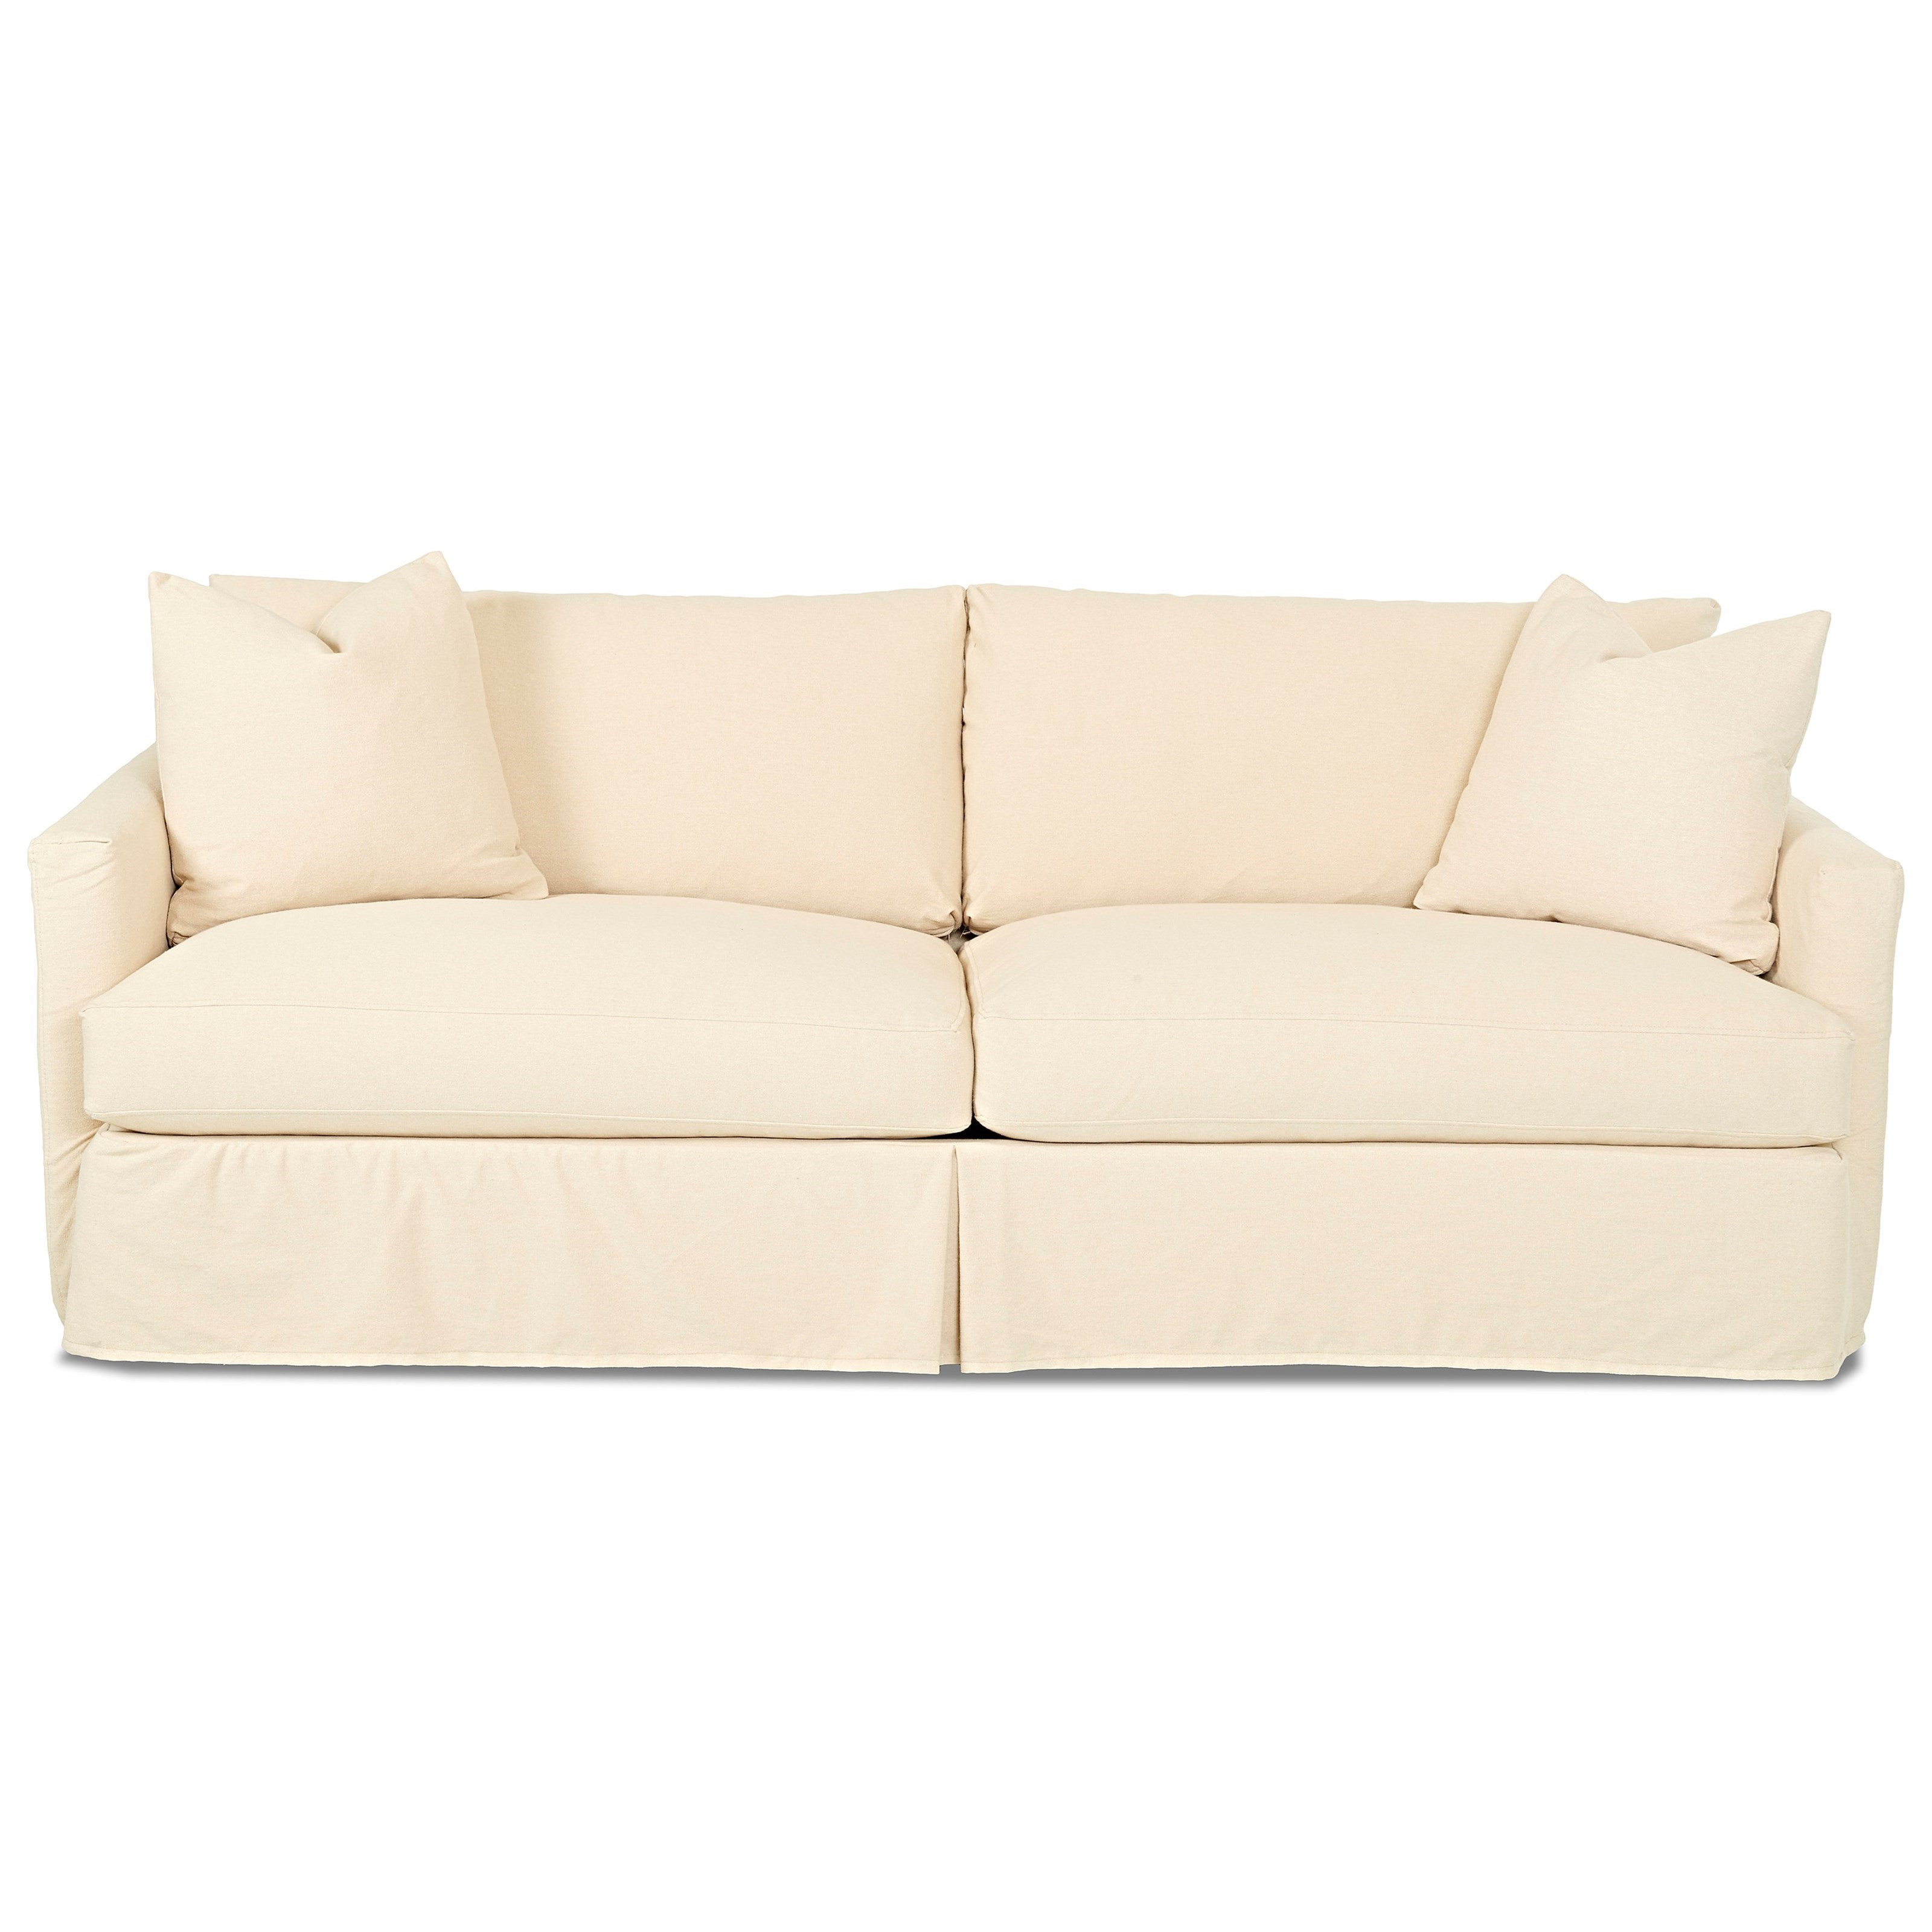 bright colored sofa covers free bed gumtree london klaussner leisure d4133 xs extra large with slipcover